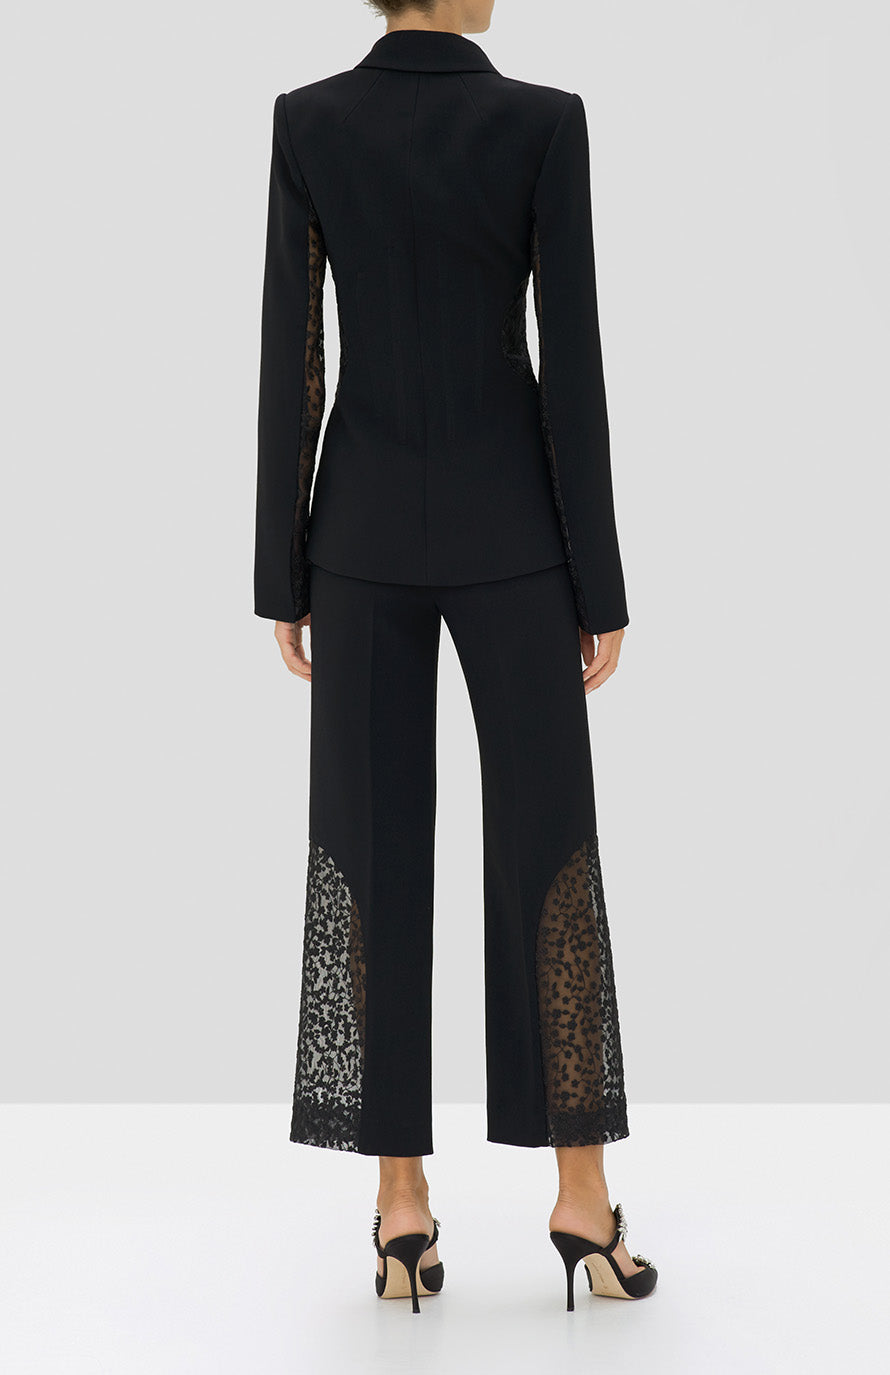 Alexis Novata Pant and Amrita Jacket in Black from the Holiday 2019 Ready To Wear Collection - Rear View